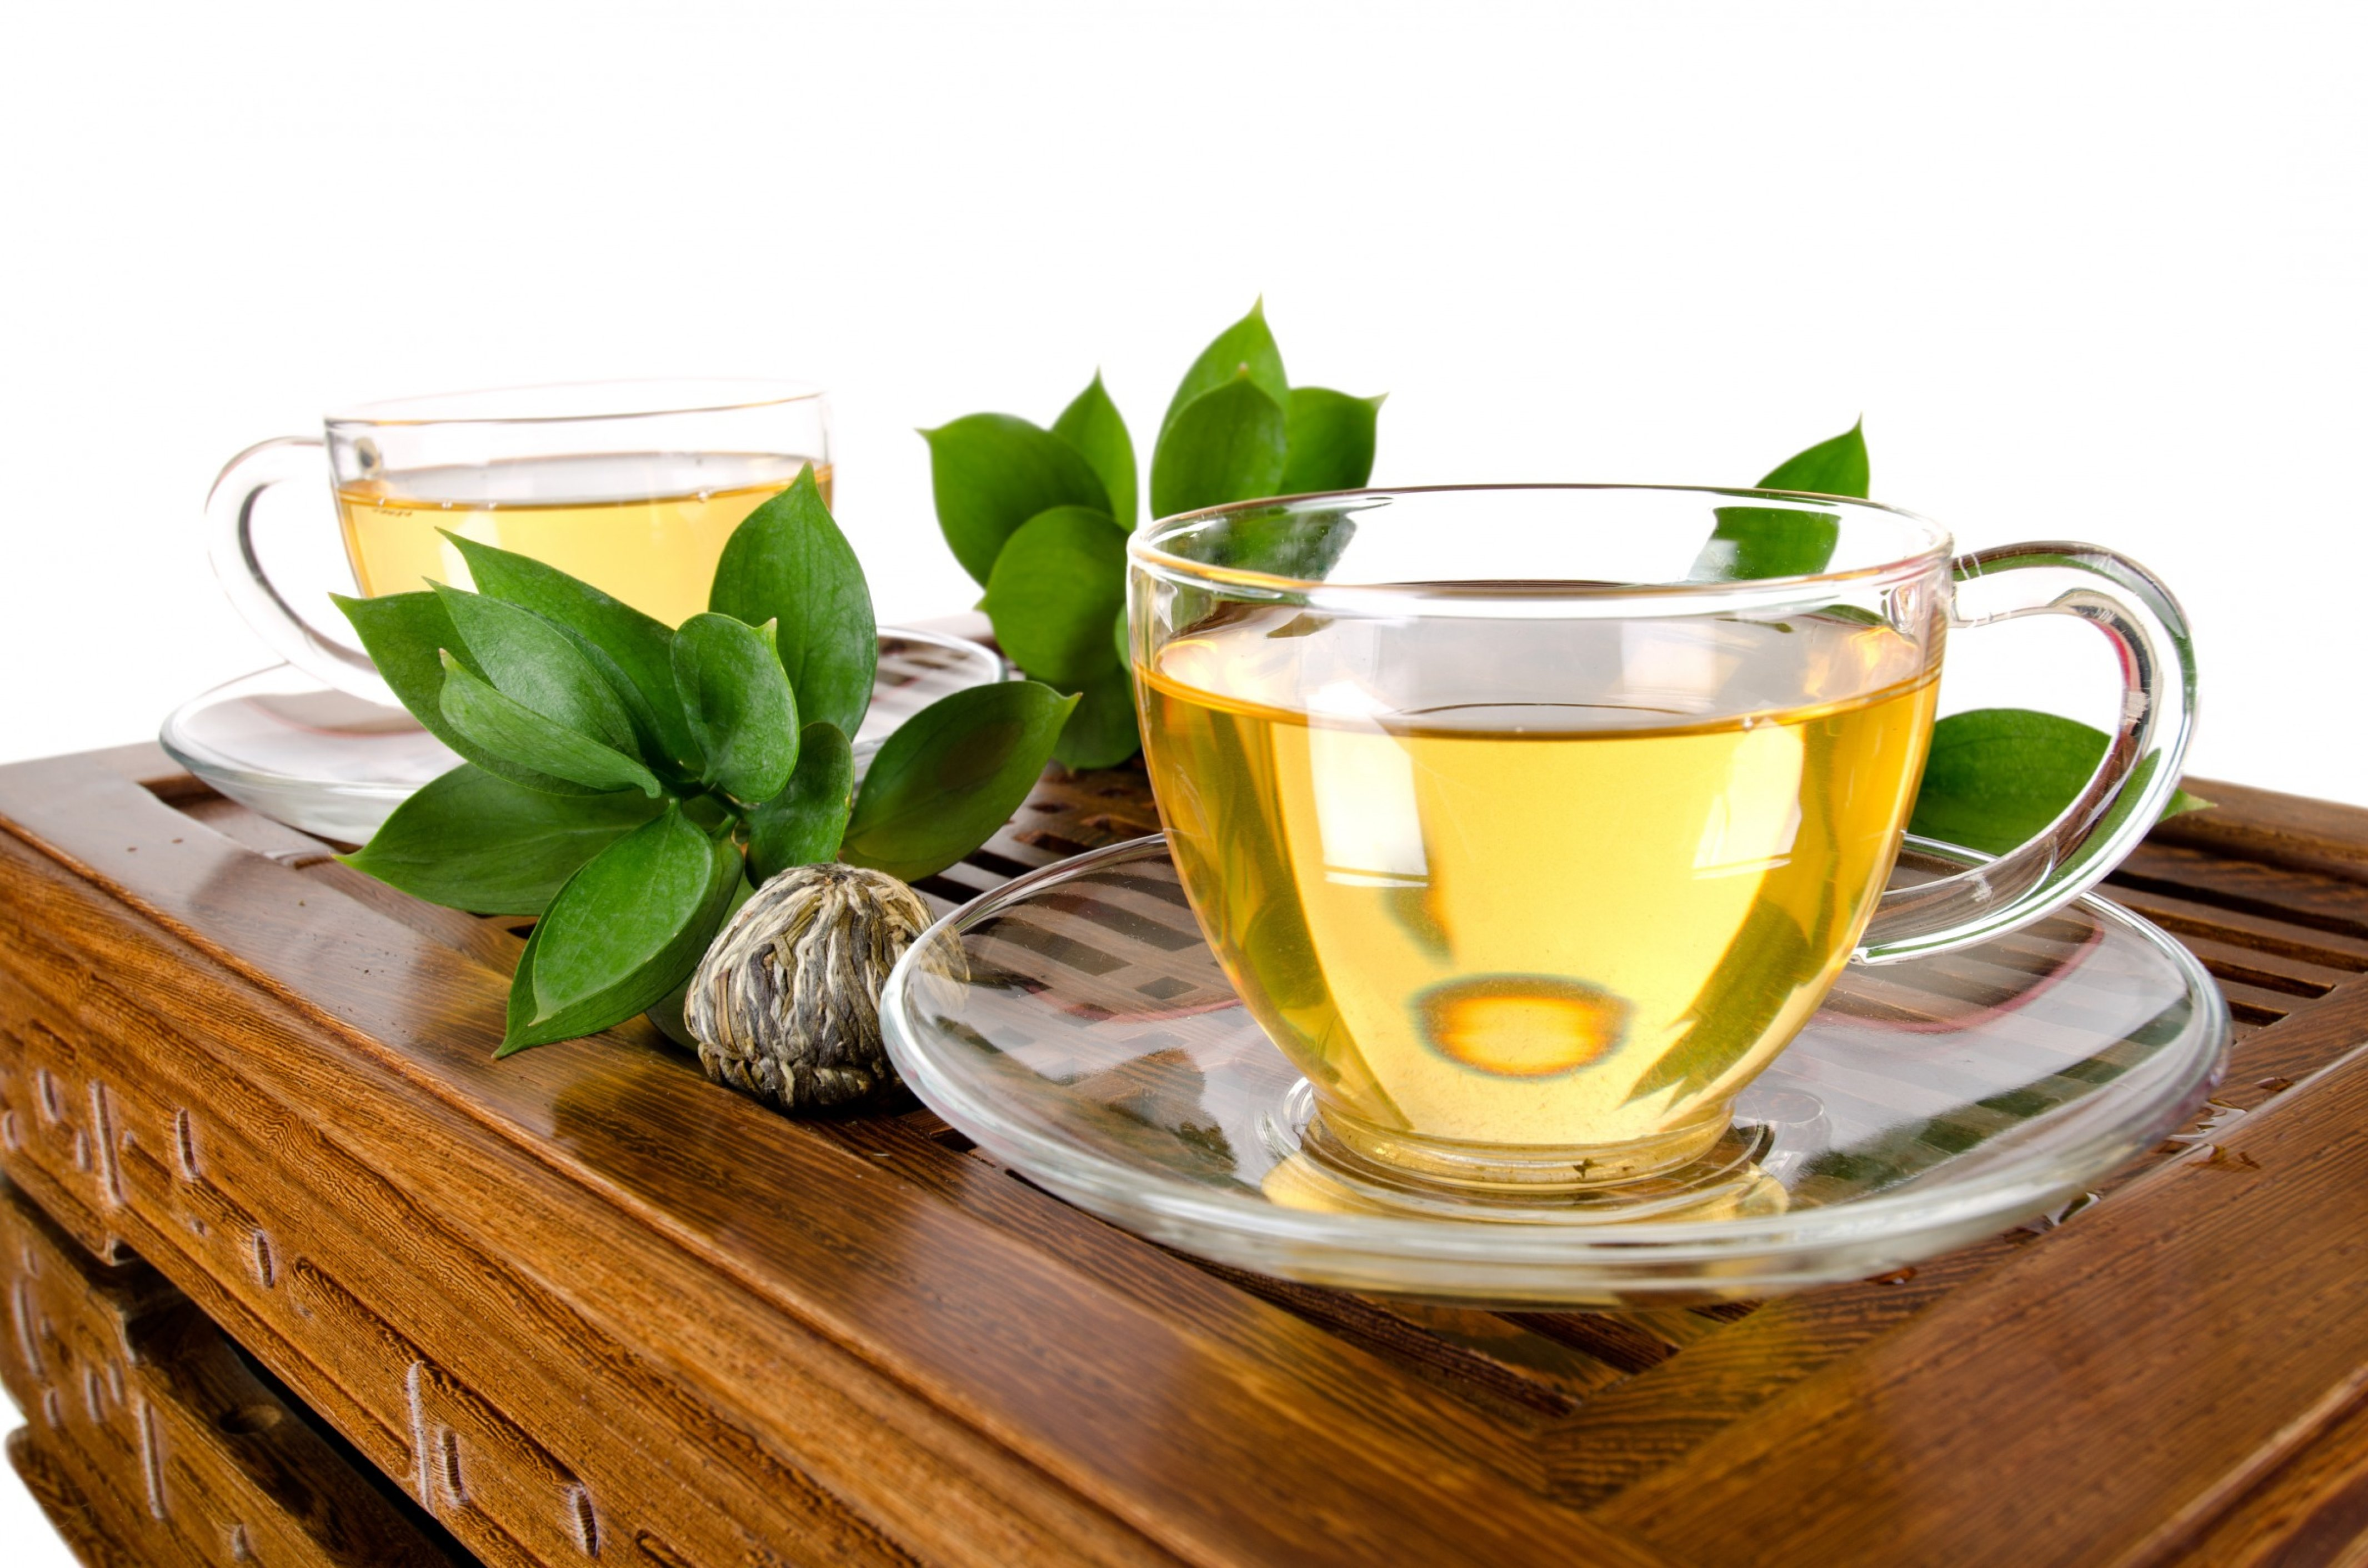 Weight Loss Central: Can Drinking Green Tea Help In Weight Loss?